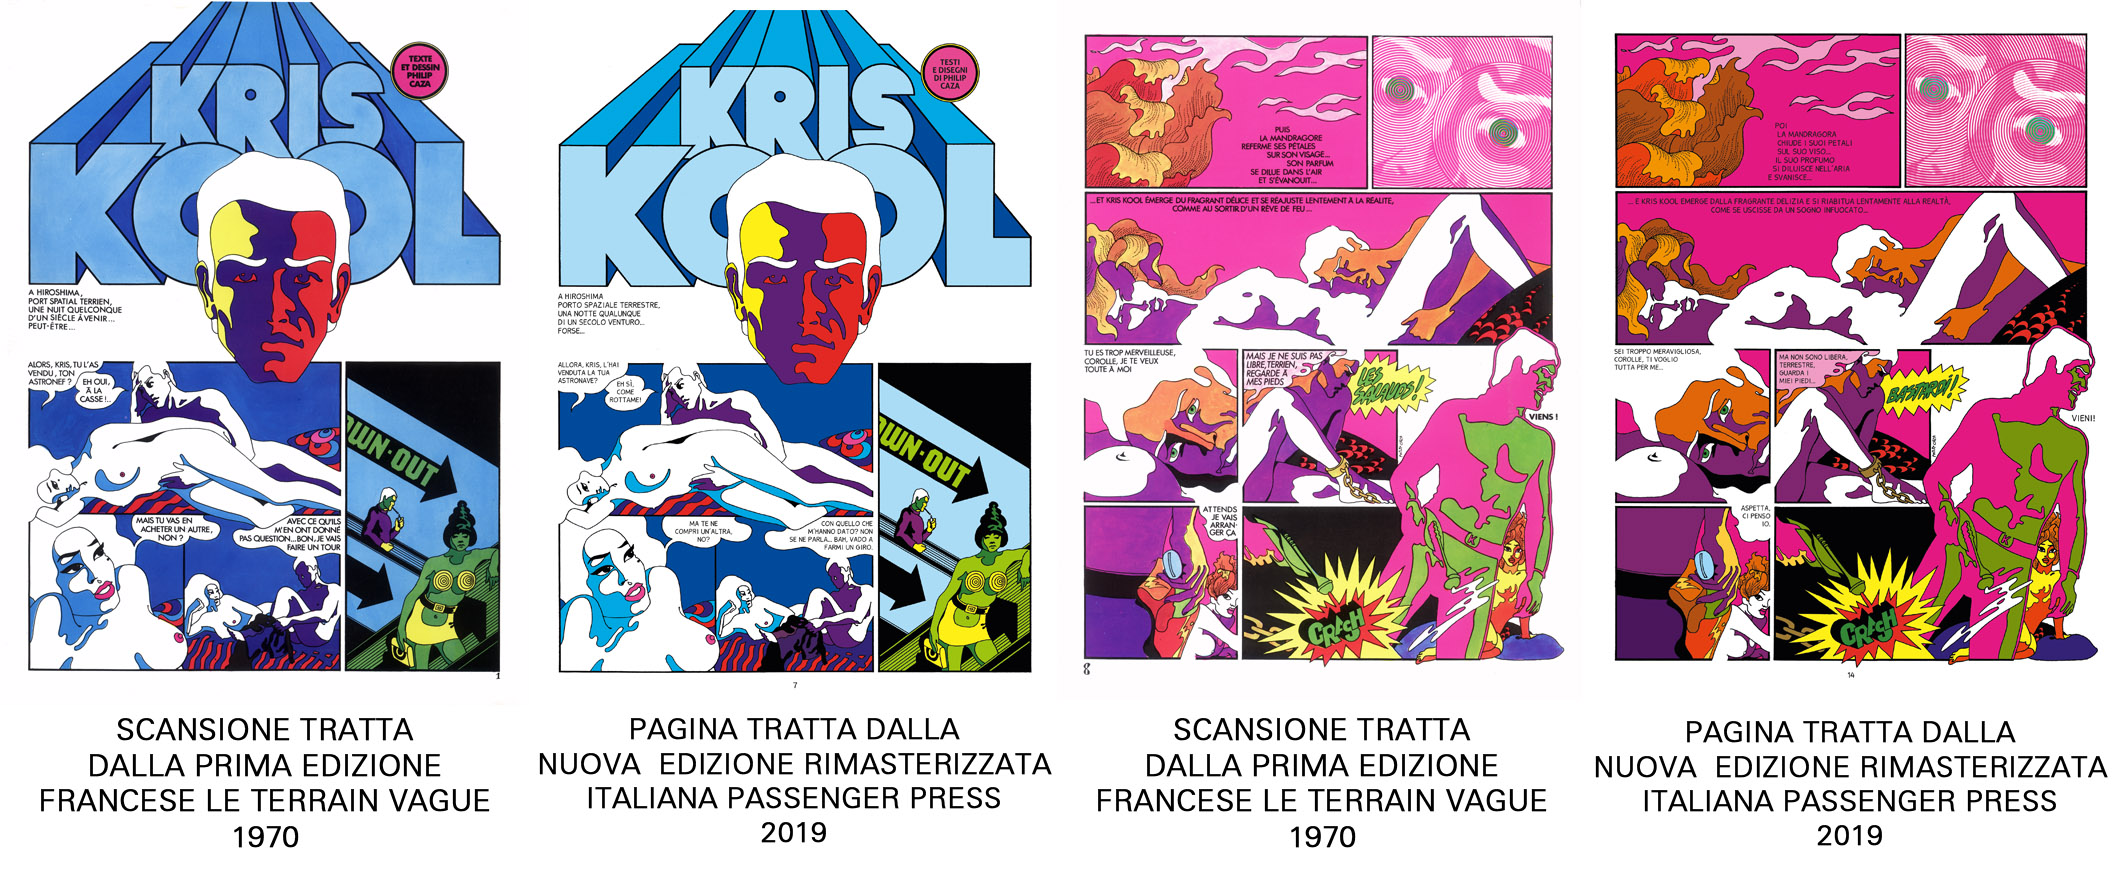 kris kool caza passenger press 10